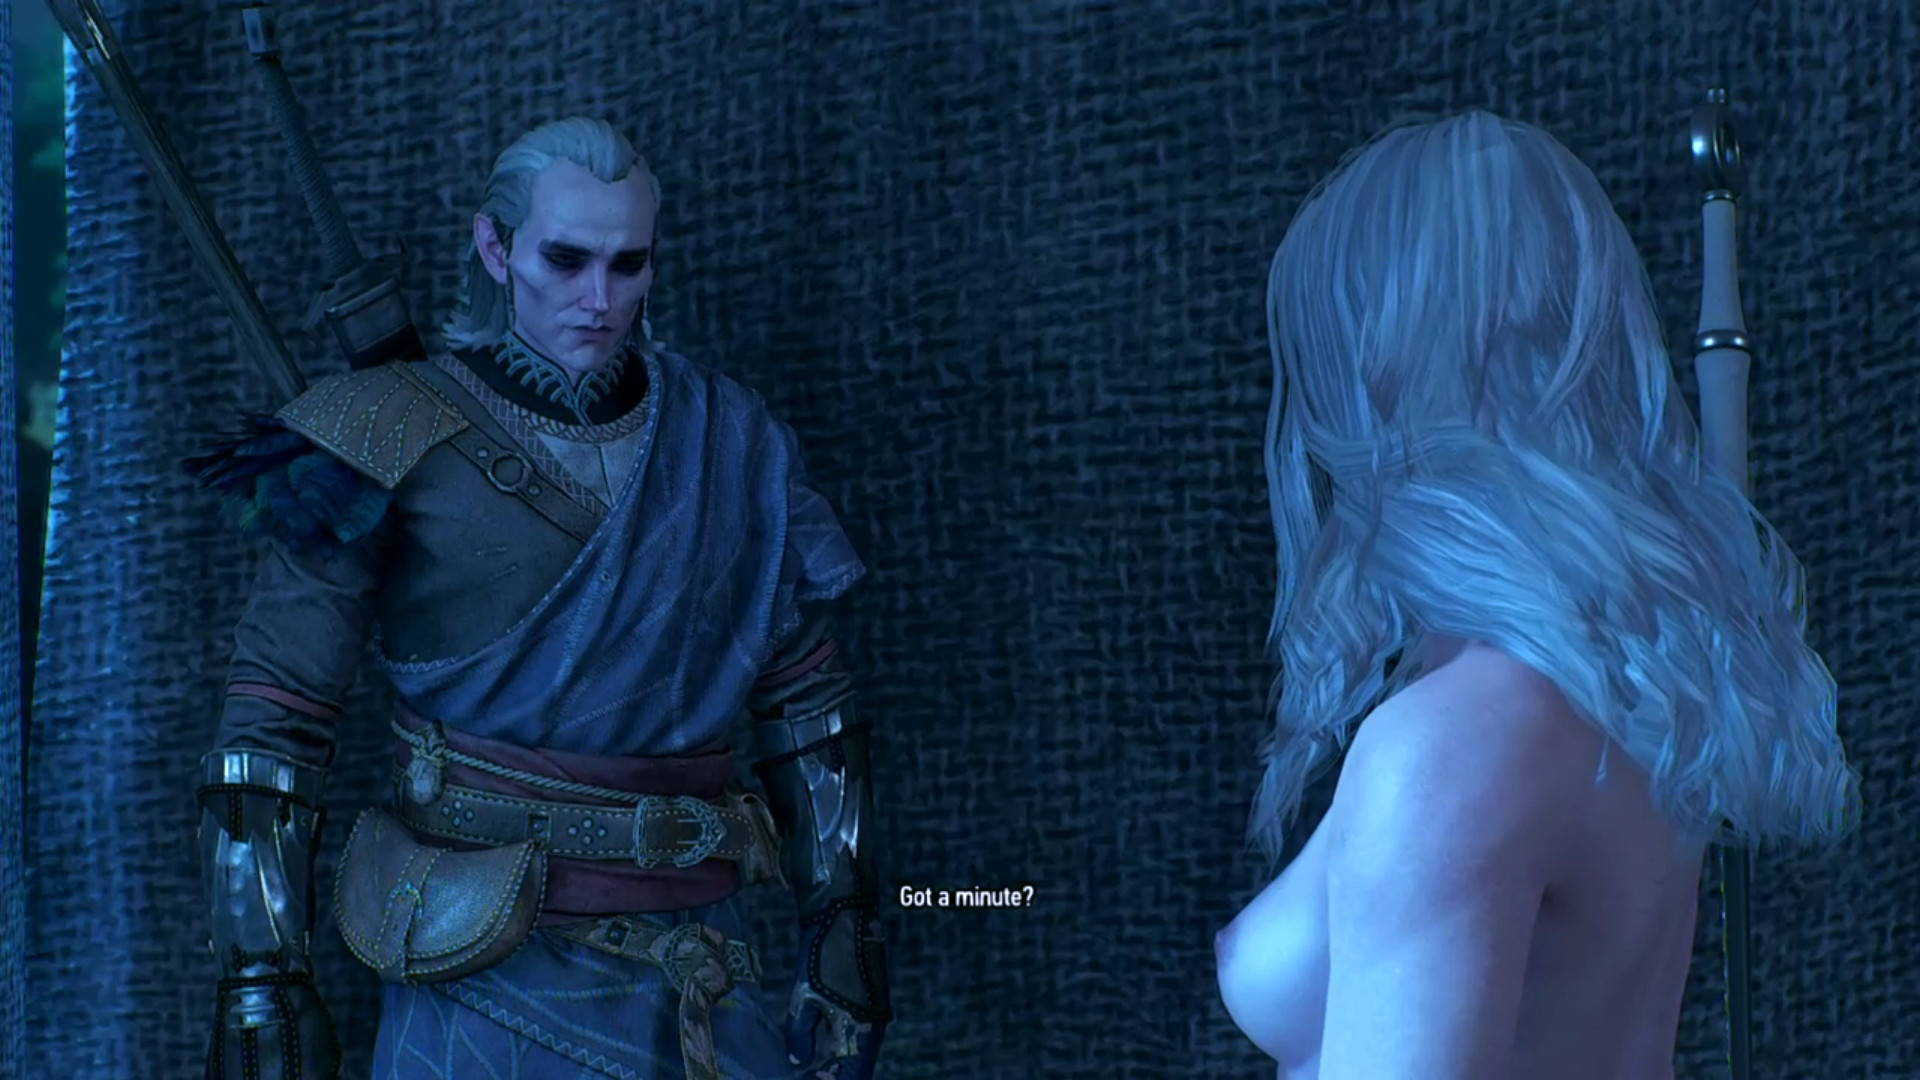 From very early in the 1st Avallac'h Playthrough (about April 2018), when we had a topless Ciri traveling with him.